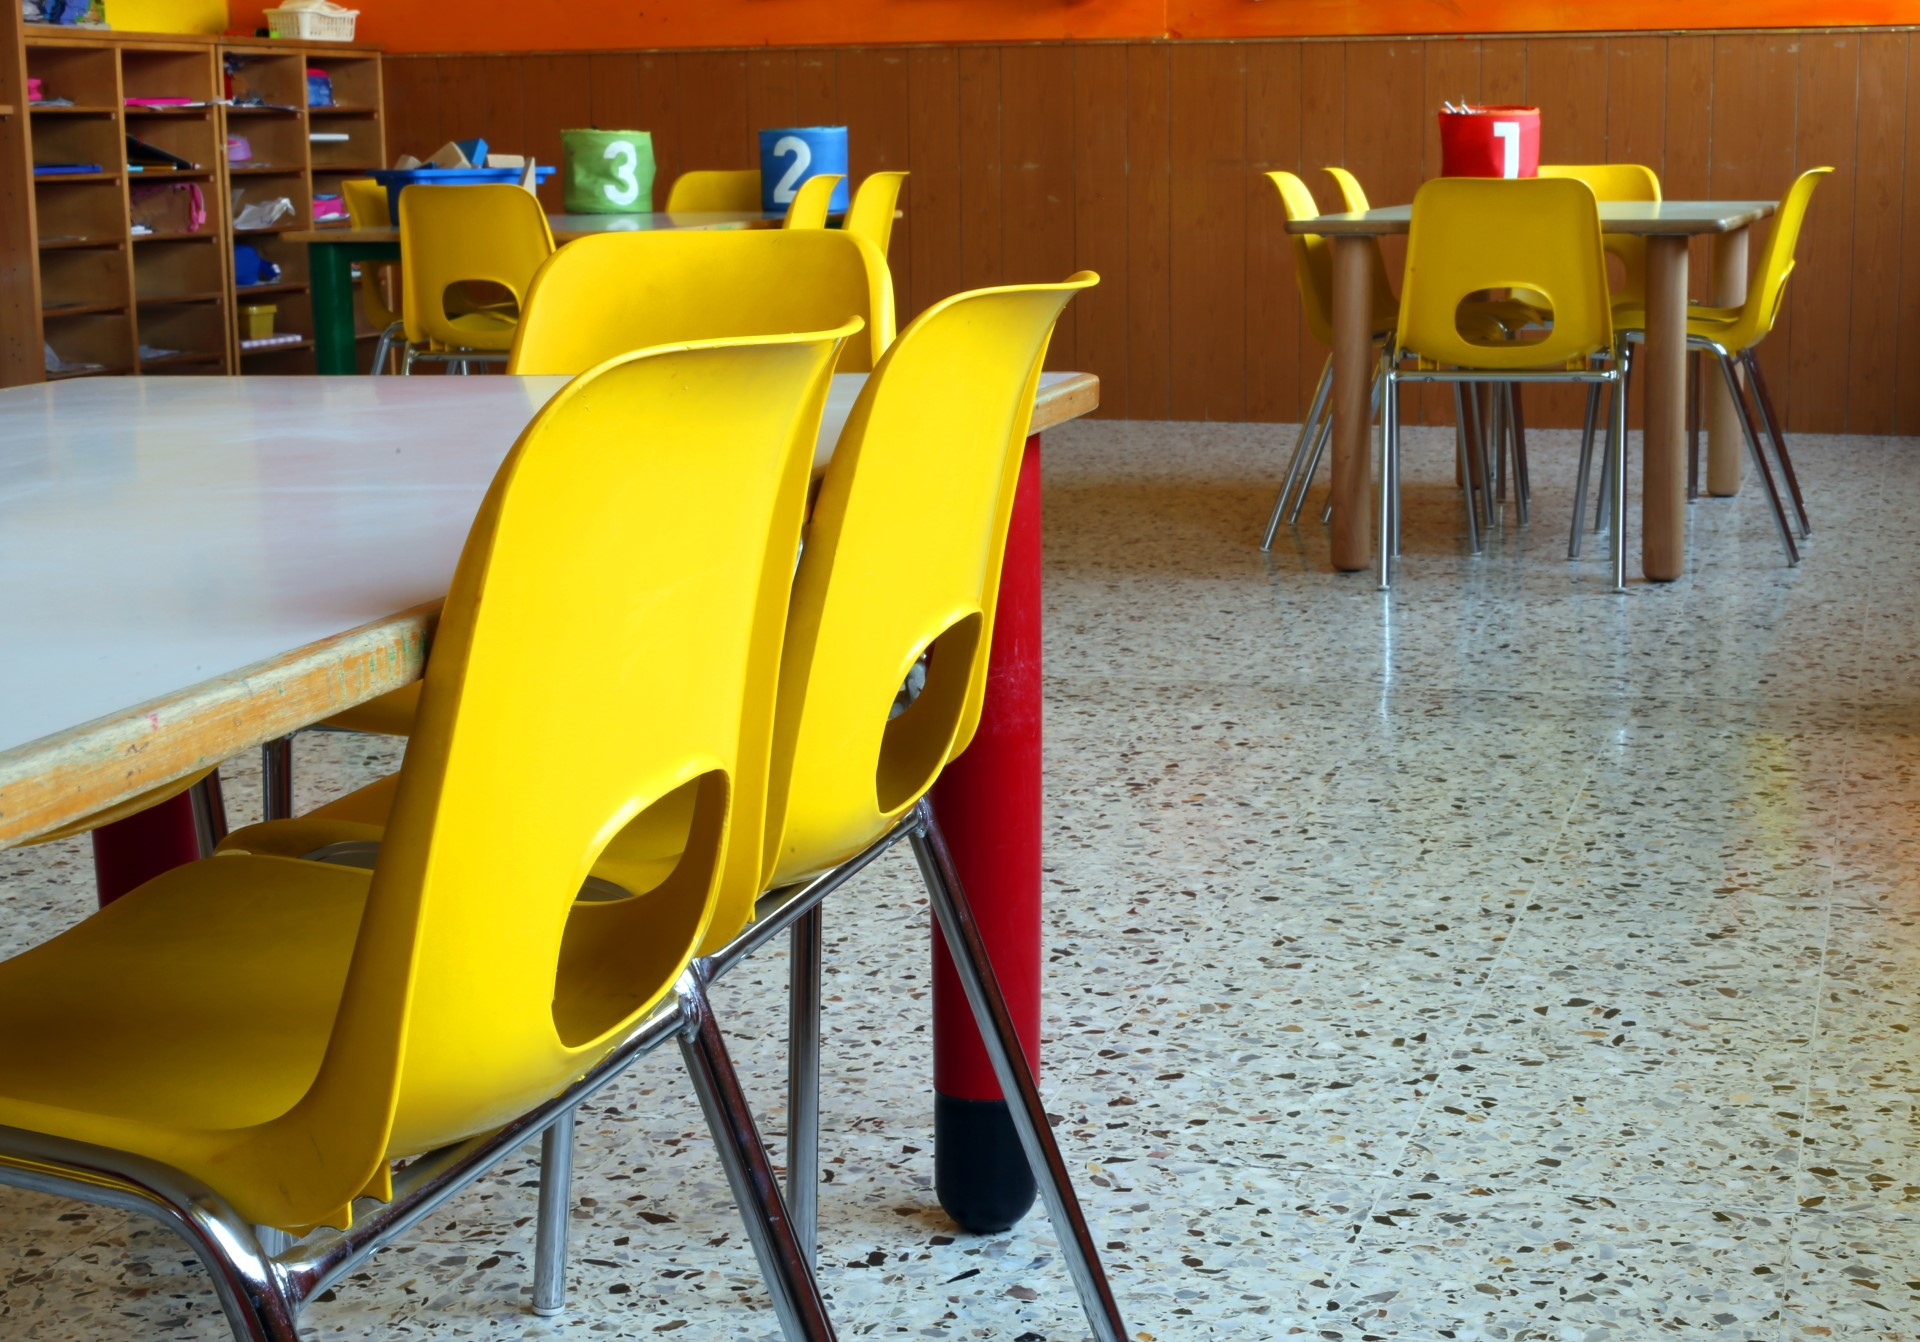 Daycare centre opening presents a potential litigation problem for owners